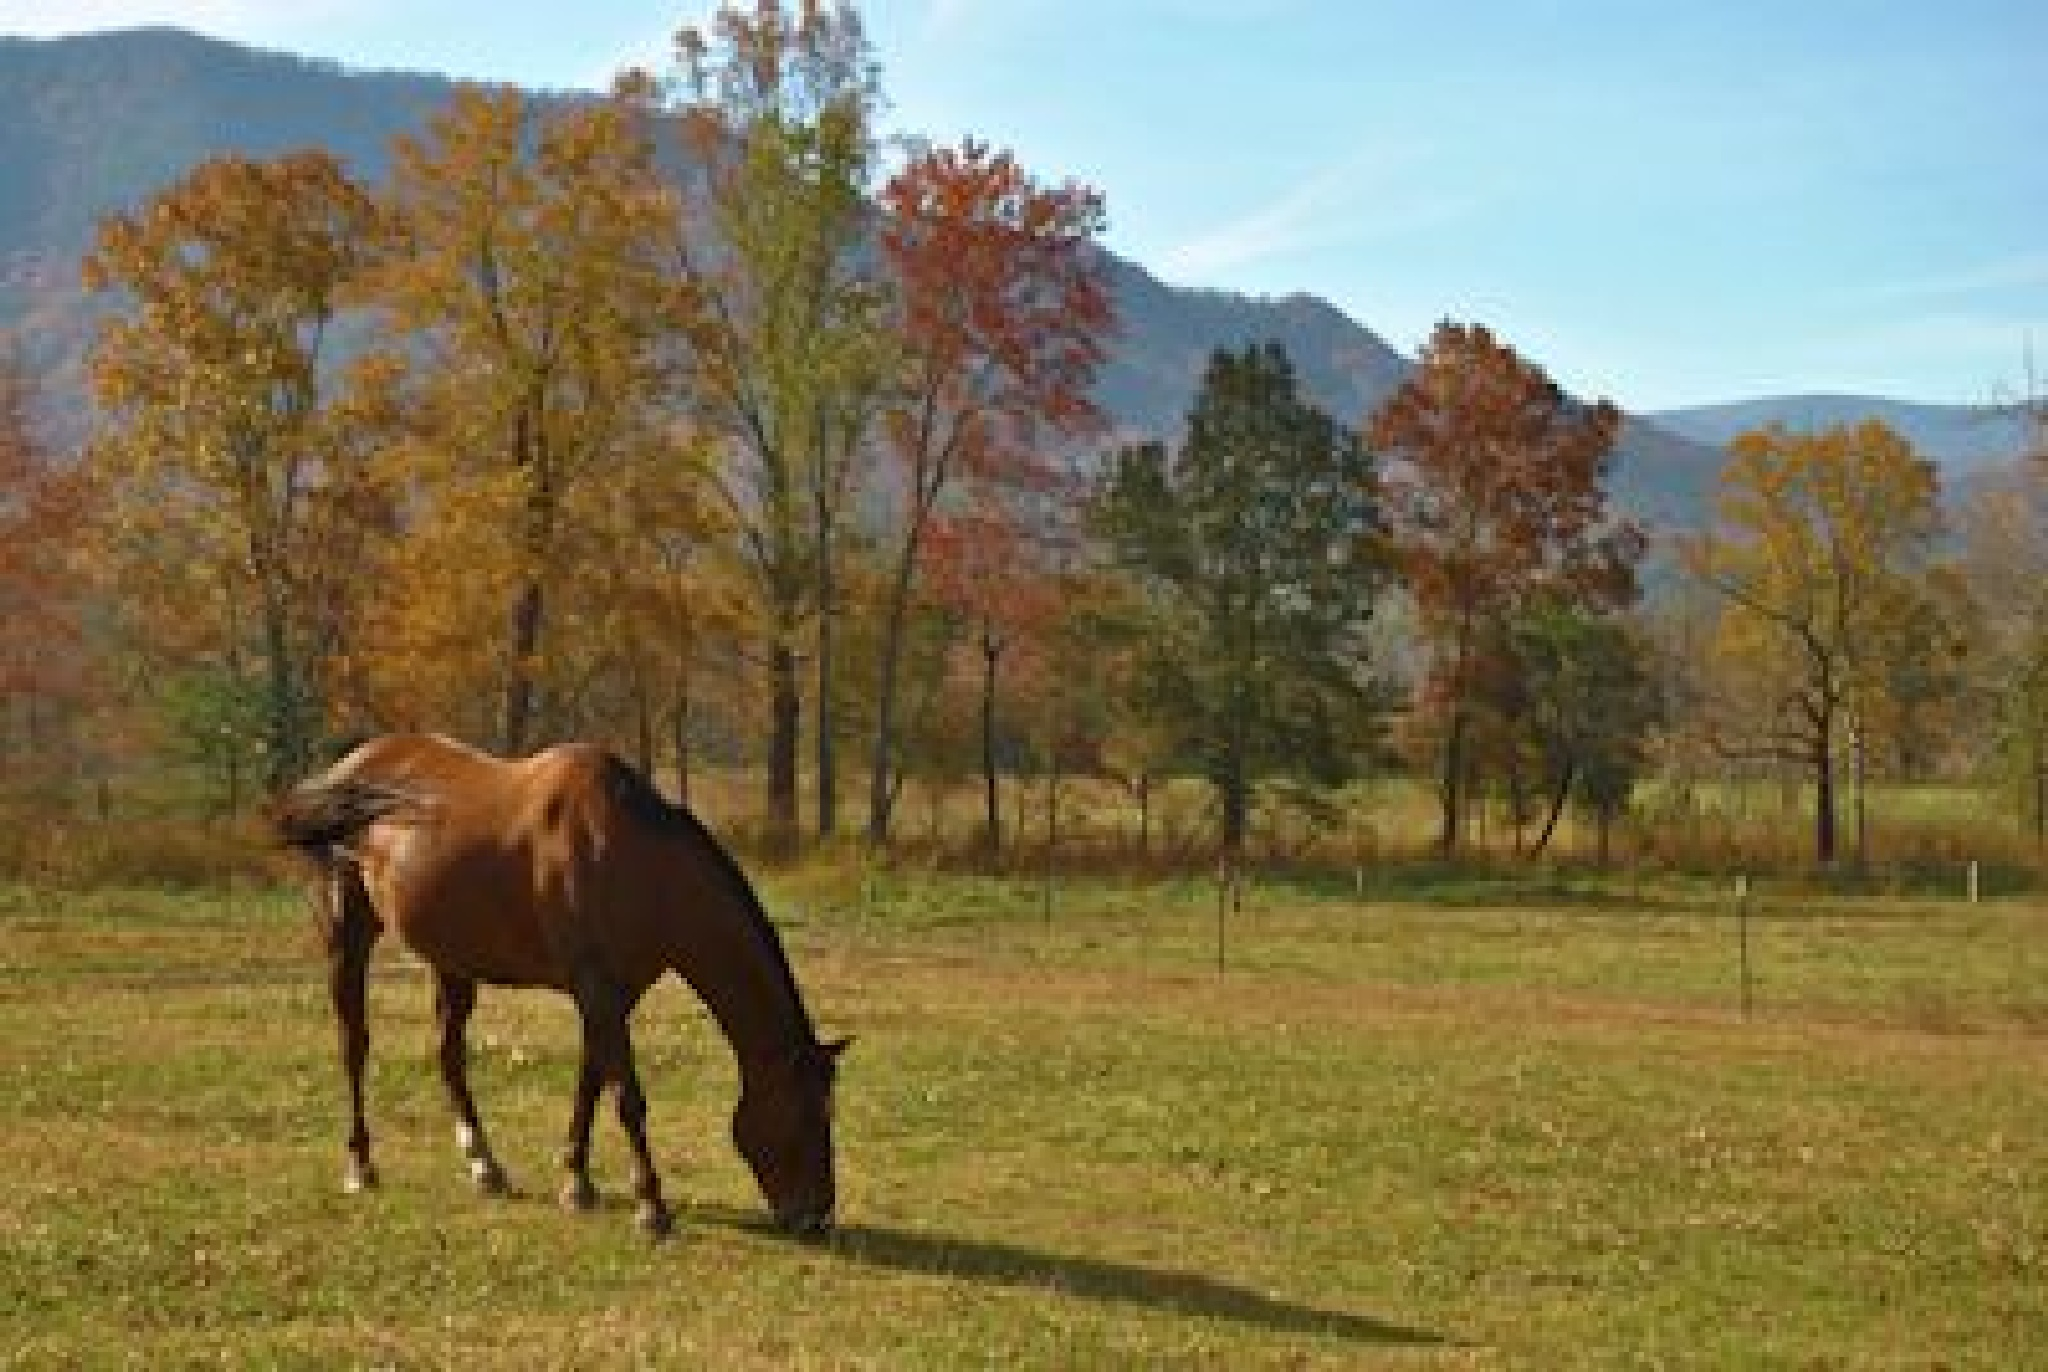 Horse at Cades Cove by Thomas Bouldin